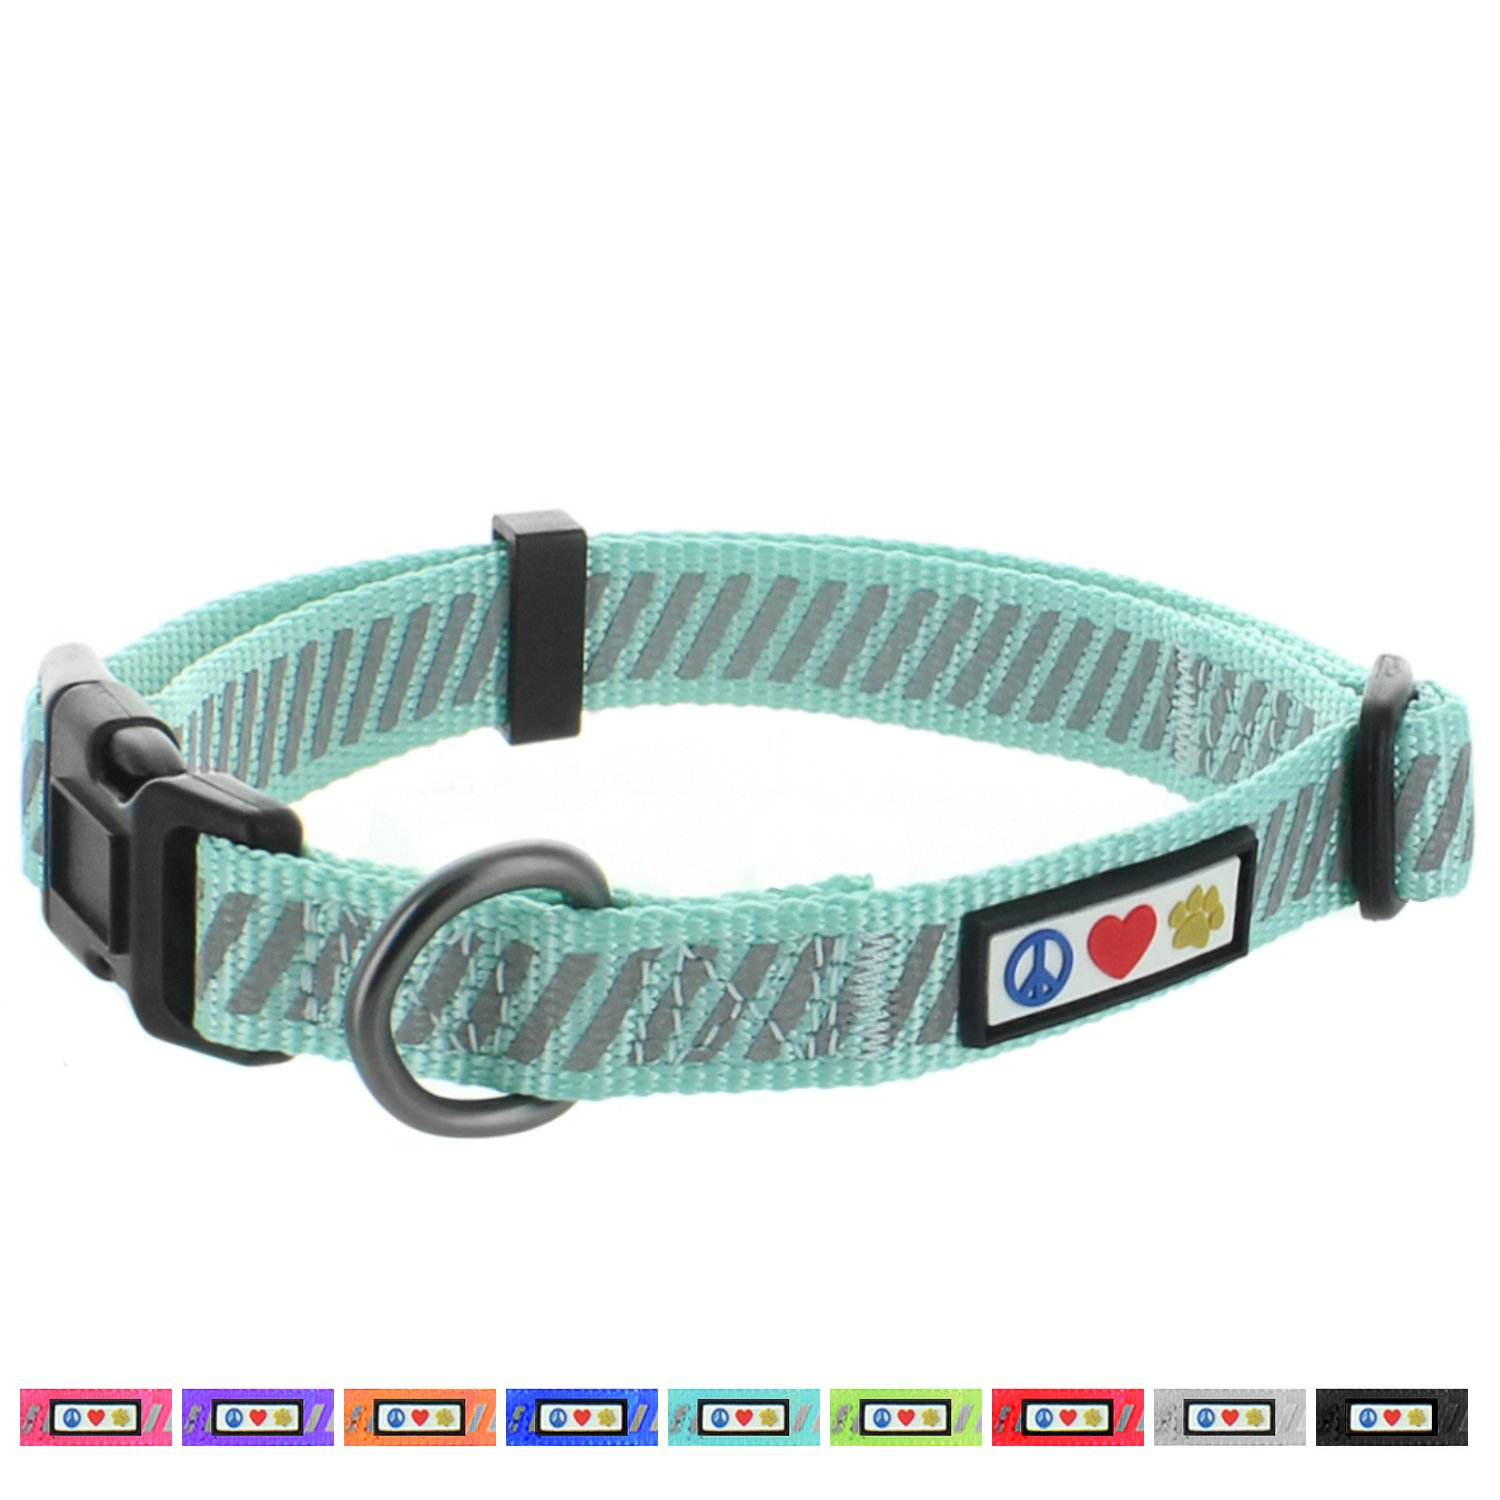 Pawtitas Pet Soft Adjustable Traffic Collection Reflective Dog Collar